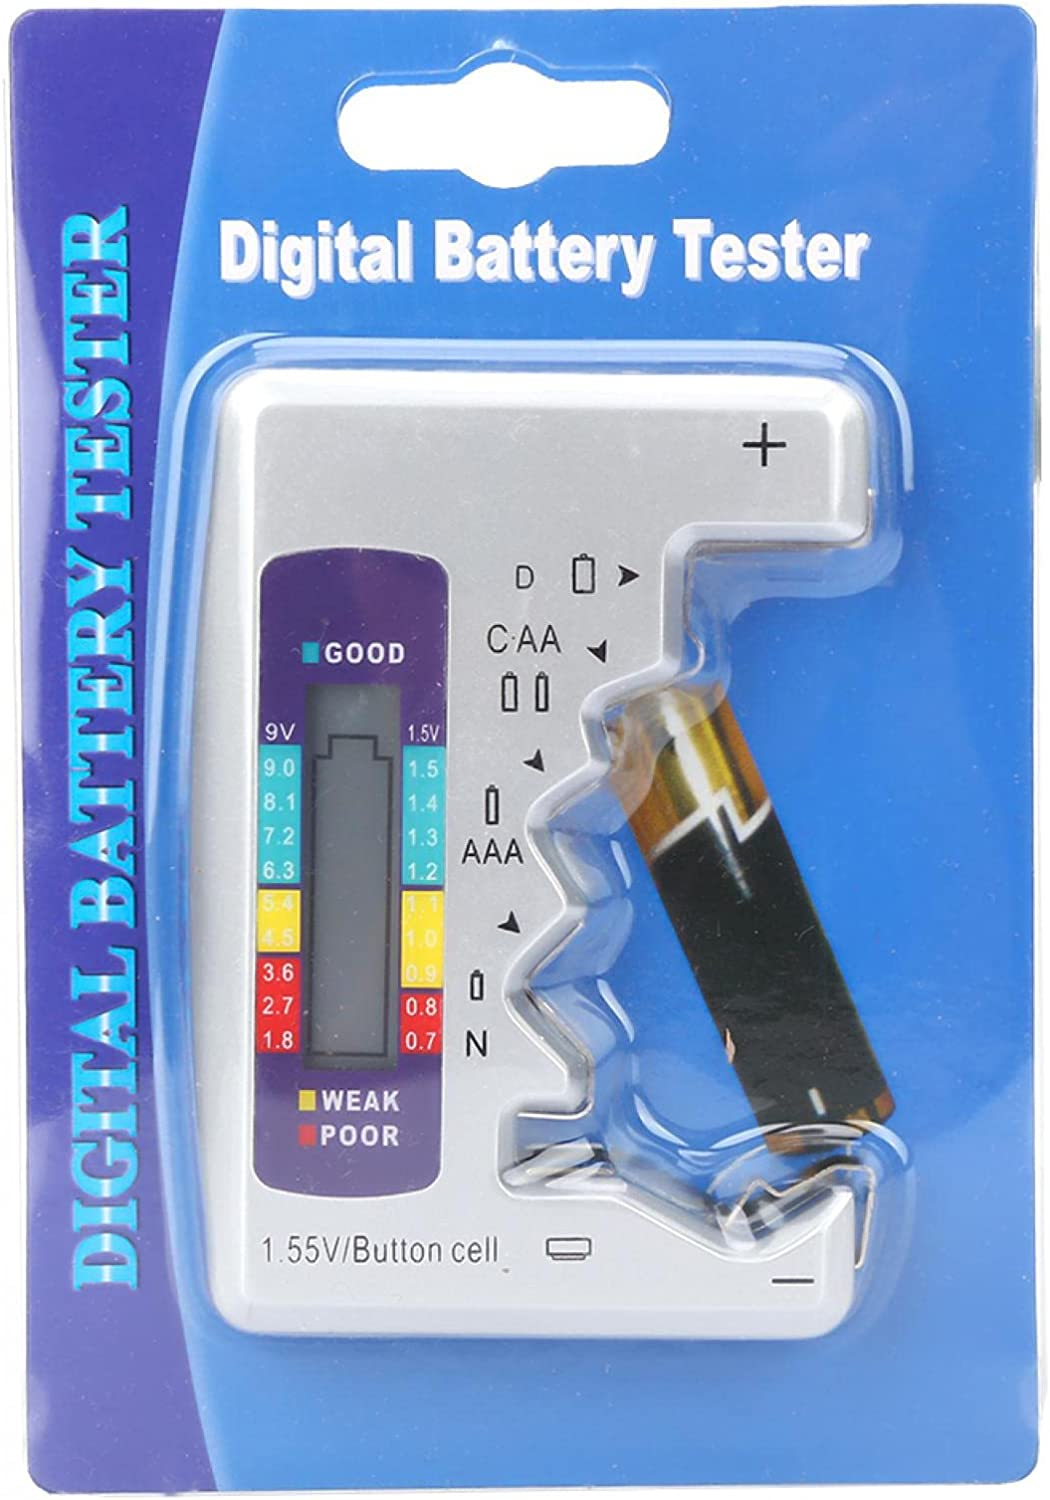 Eujgoov Digital Battery Tester Battery Capacity Detector Electronic Tool Rechargeable Battery Measuring whether the Battery is fully Charged (90 x 60mm)